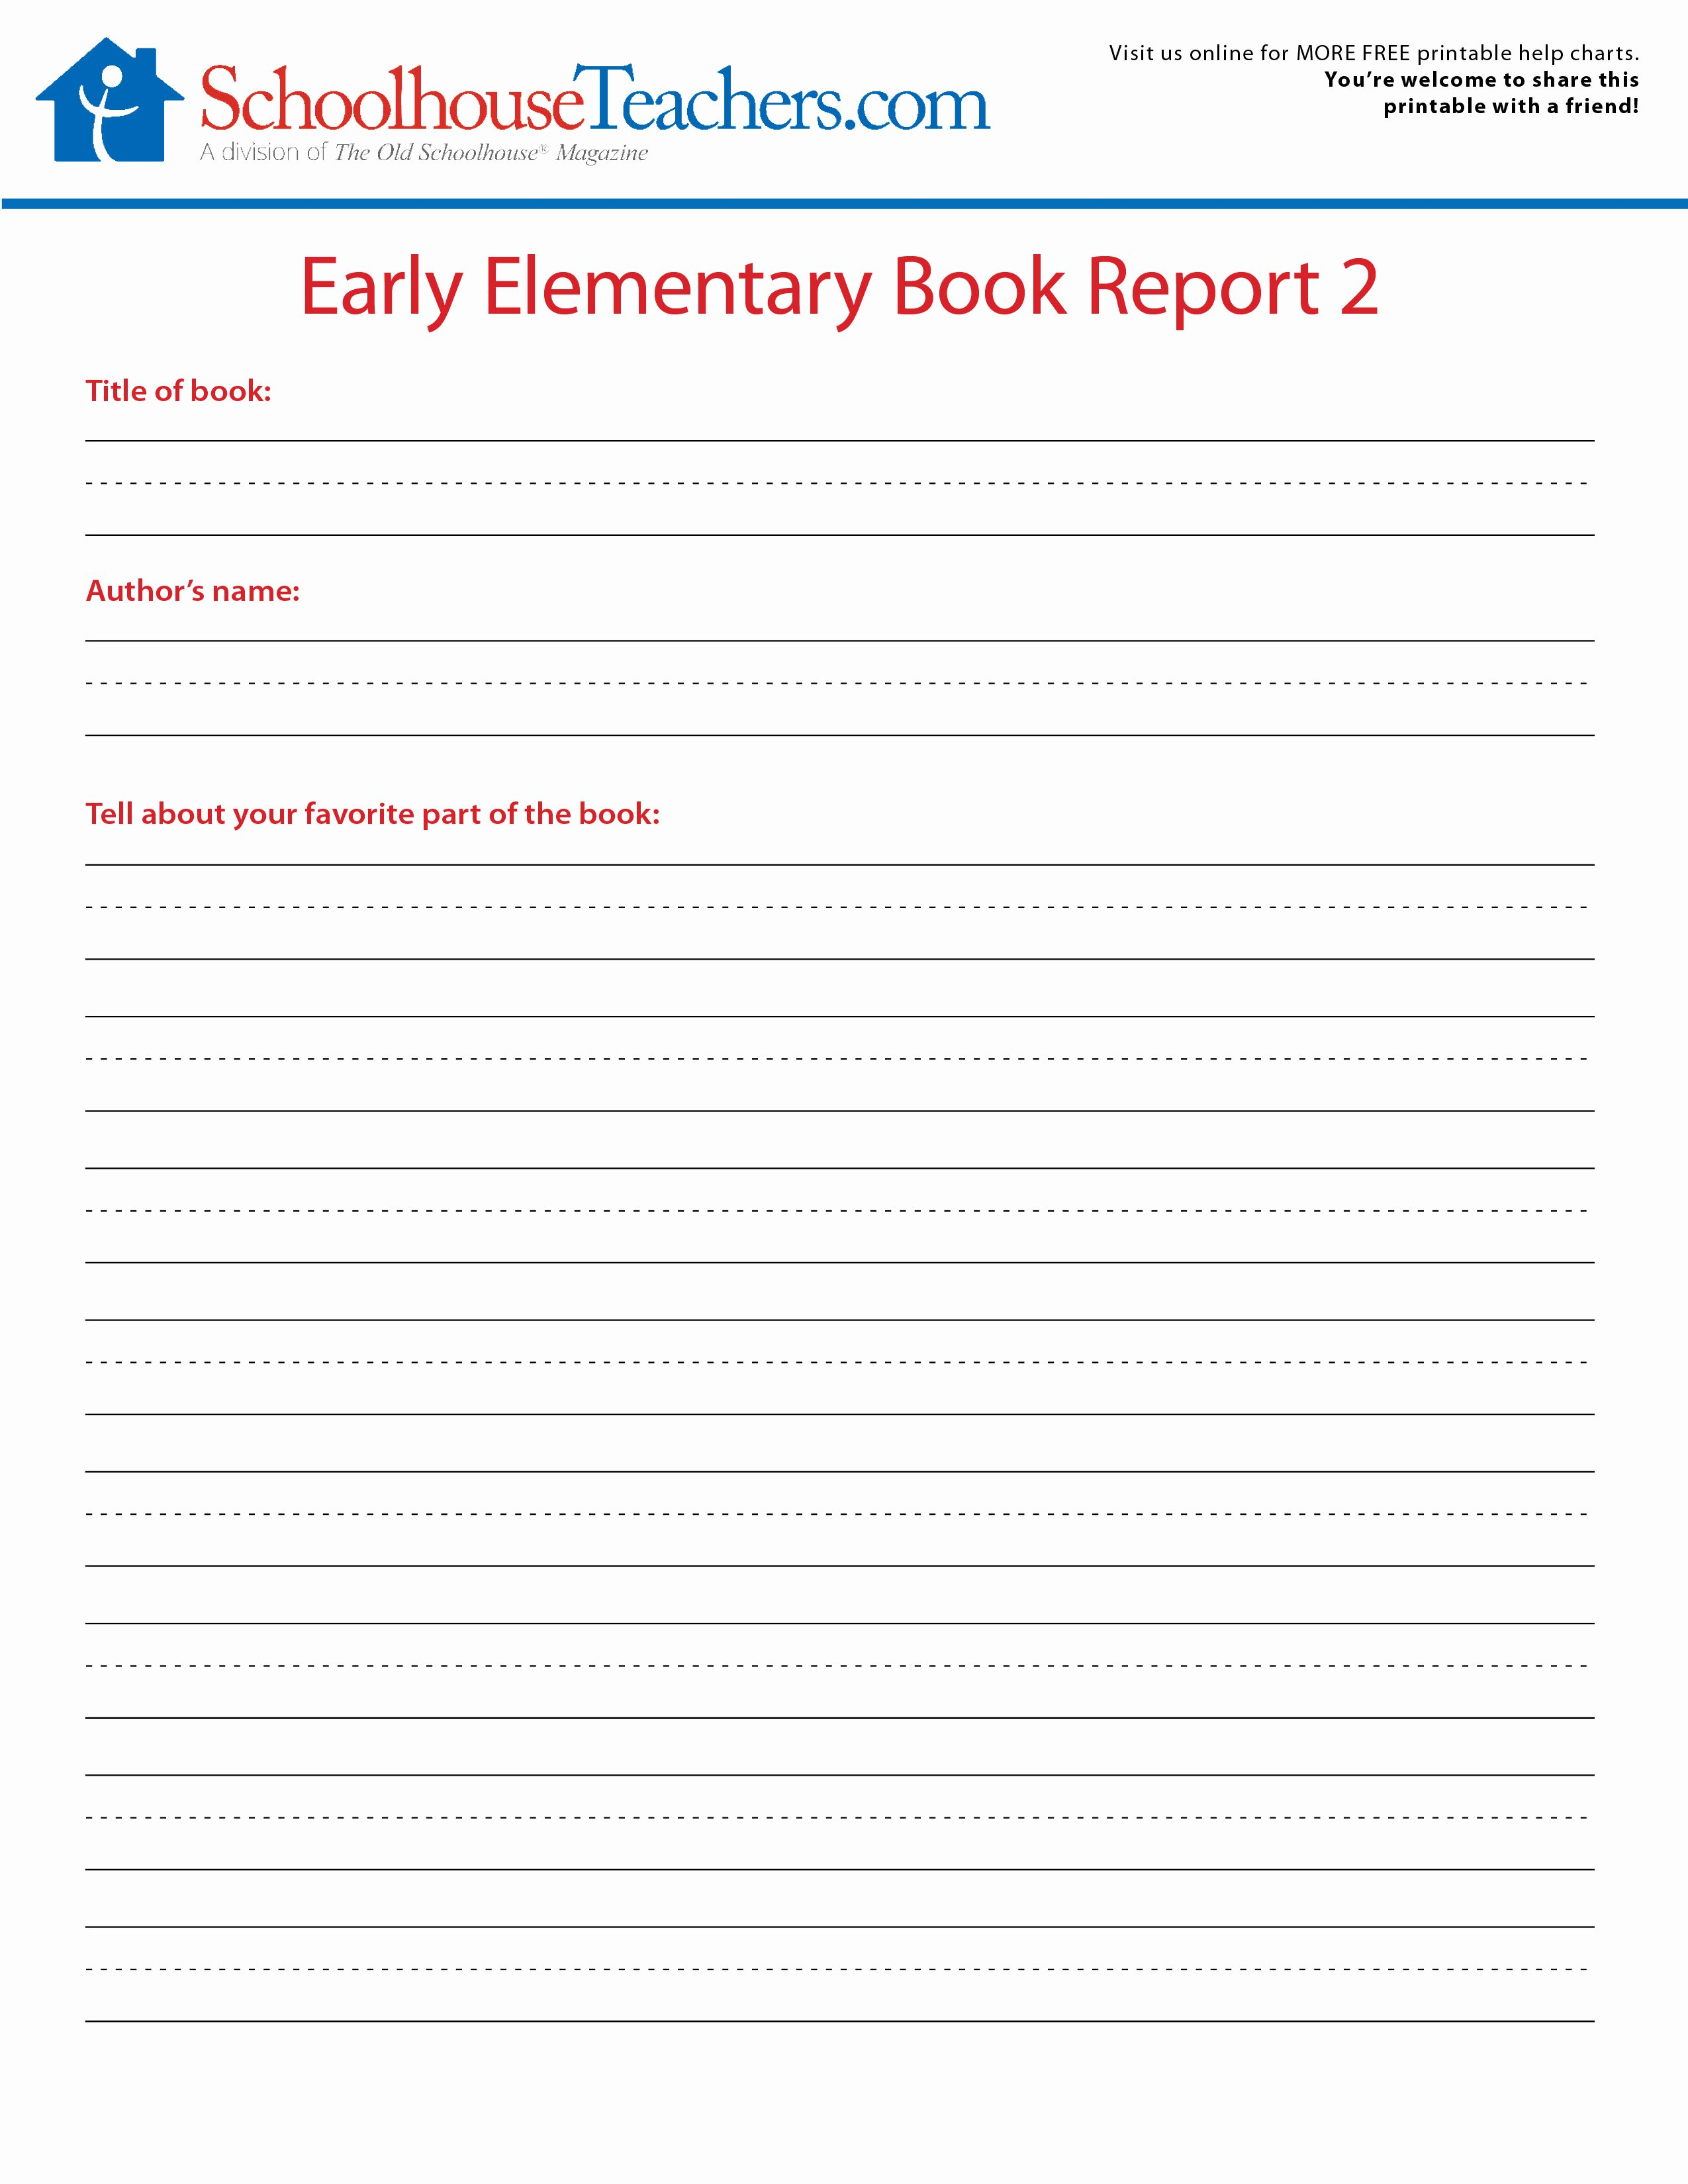 Free Book Report forms Fresh 2 Free Elementary School Book Report Print Out forms